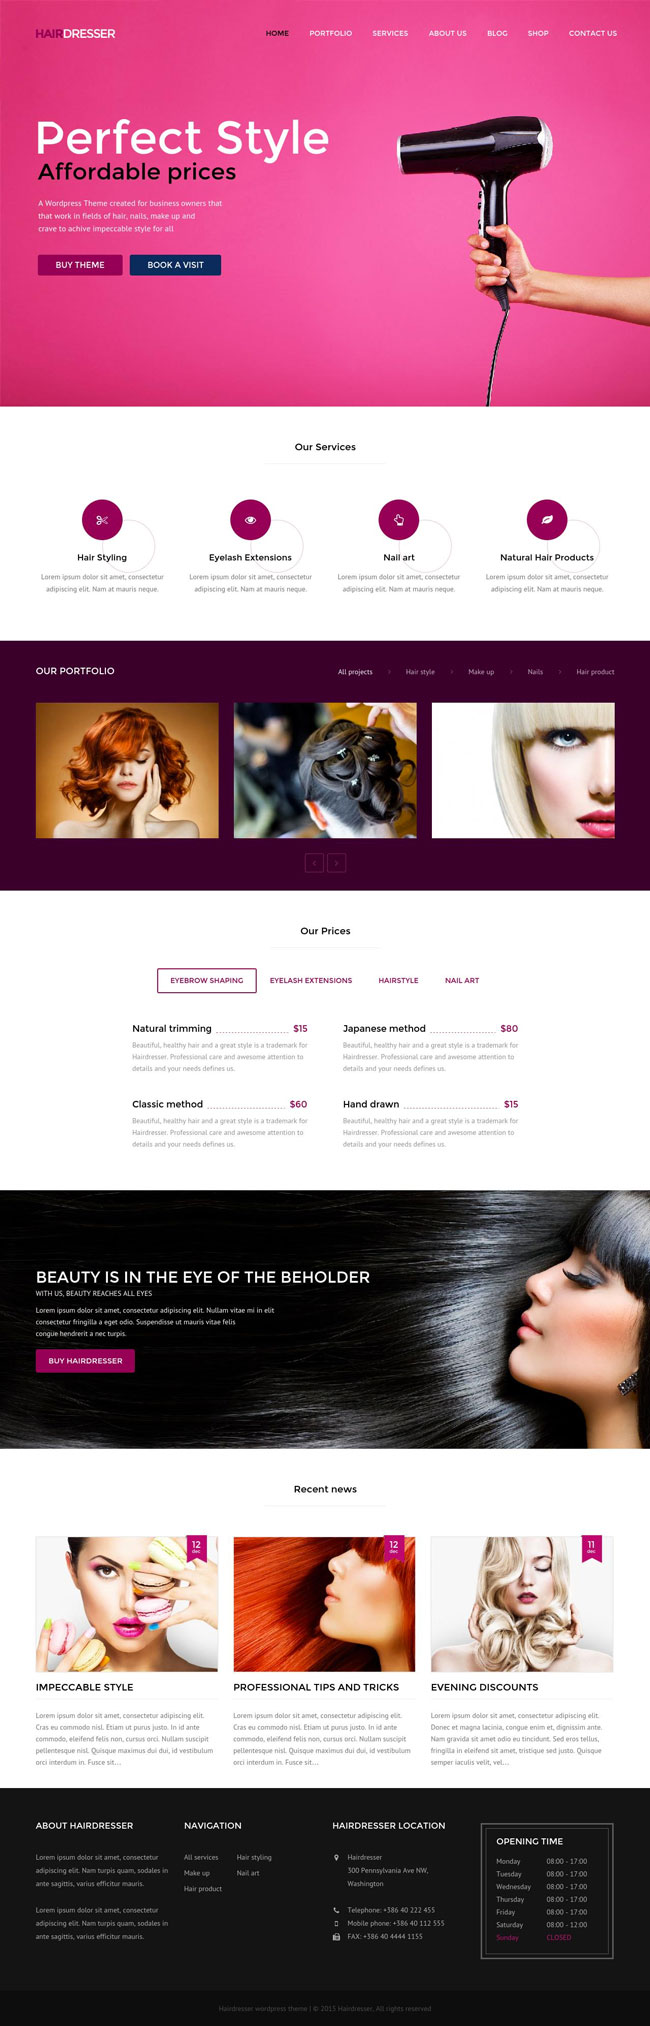 Hairdresser-Hair-Salon-WordPress-theme